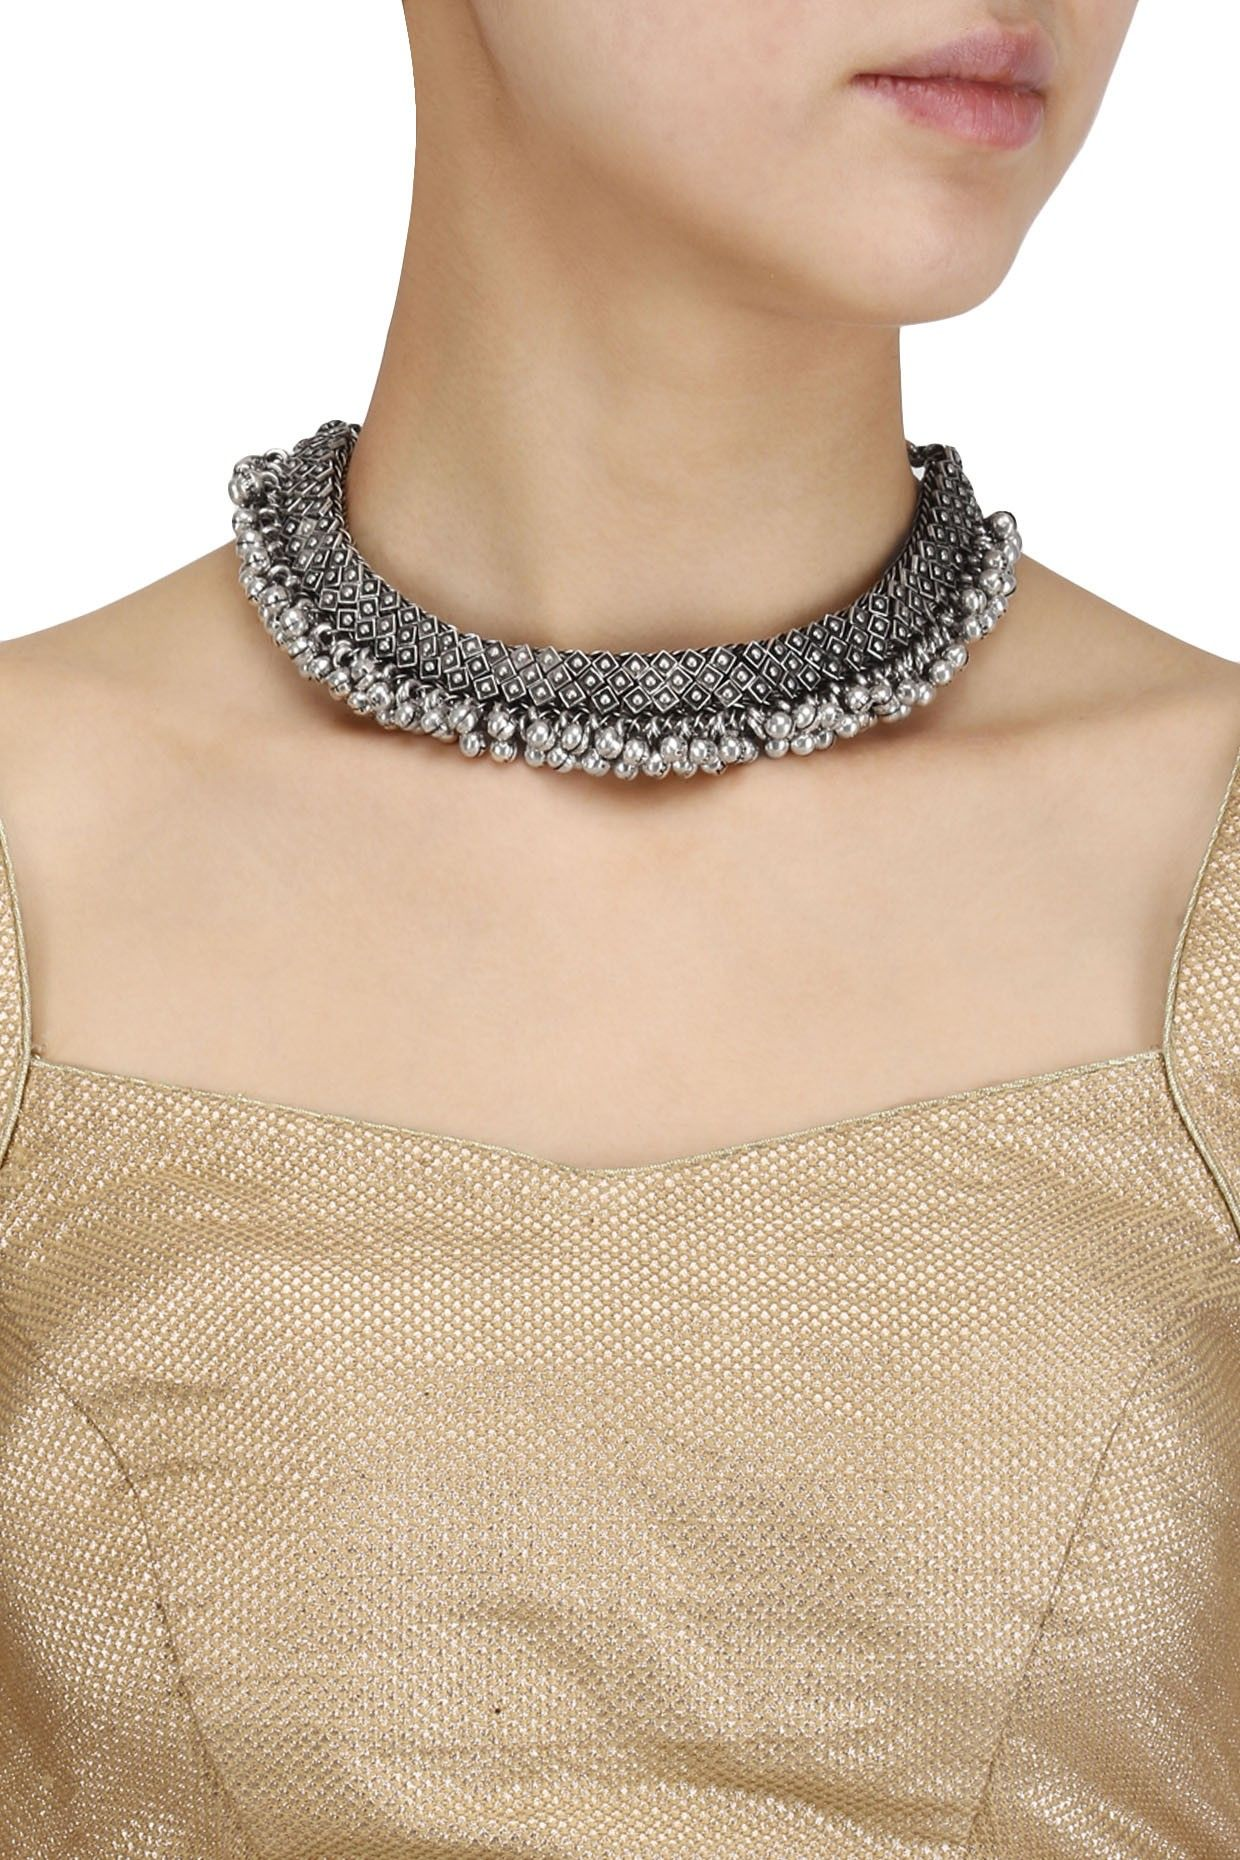 c77ba05eba Silver Roots presents Oxidesed silver plated ghungroo choker available only  at Pernia's Pop Up Shop.